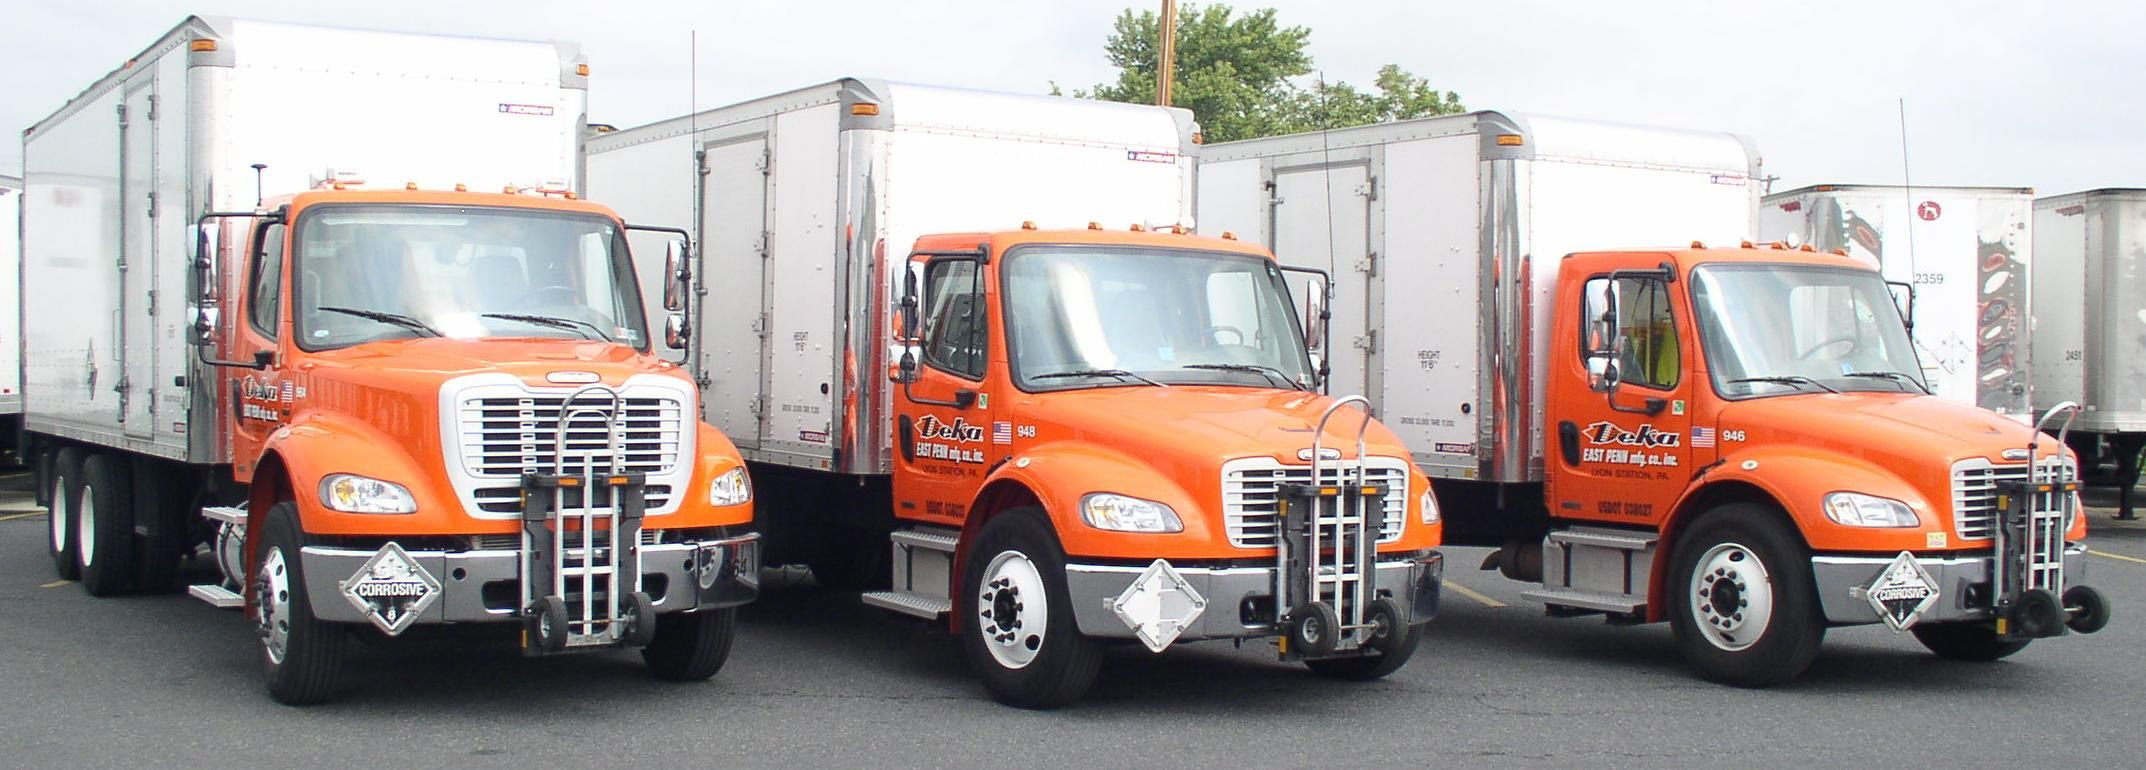 Easy Penn Manufacturing Deka Batteries Freightliner M2 Route Delivery Trucks With Morgan Truck Bodies And Hts Systems Hand Trucks Trucks Food Delivery Truck